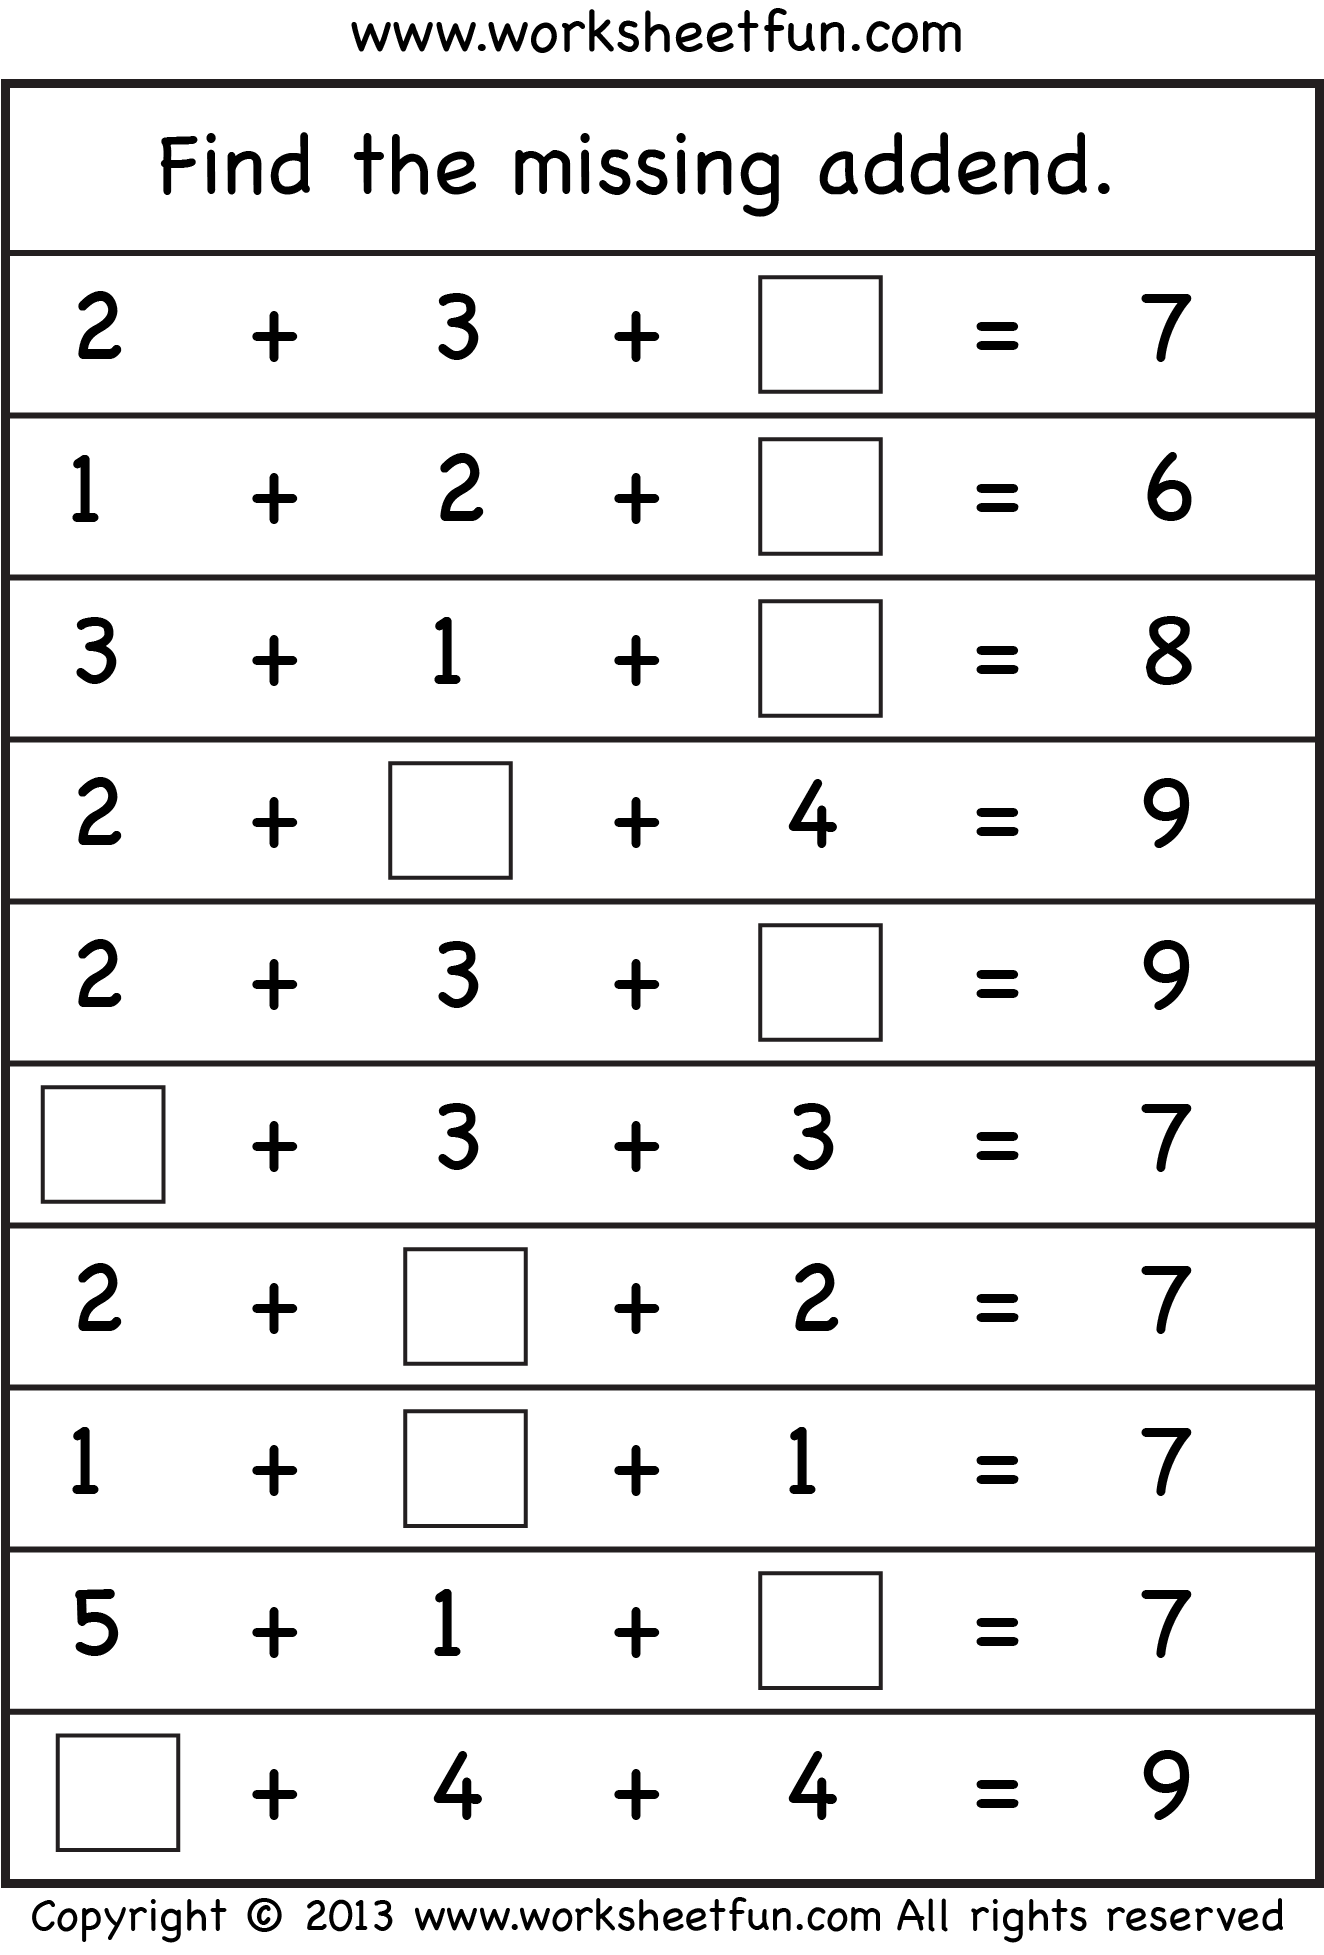 small resolution of missing-addend-level2-W1-.png (1324×1955)   Mental maths worksheets